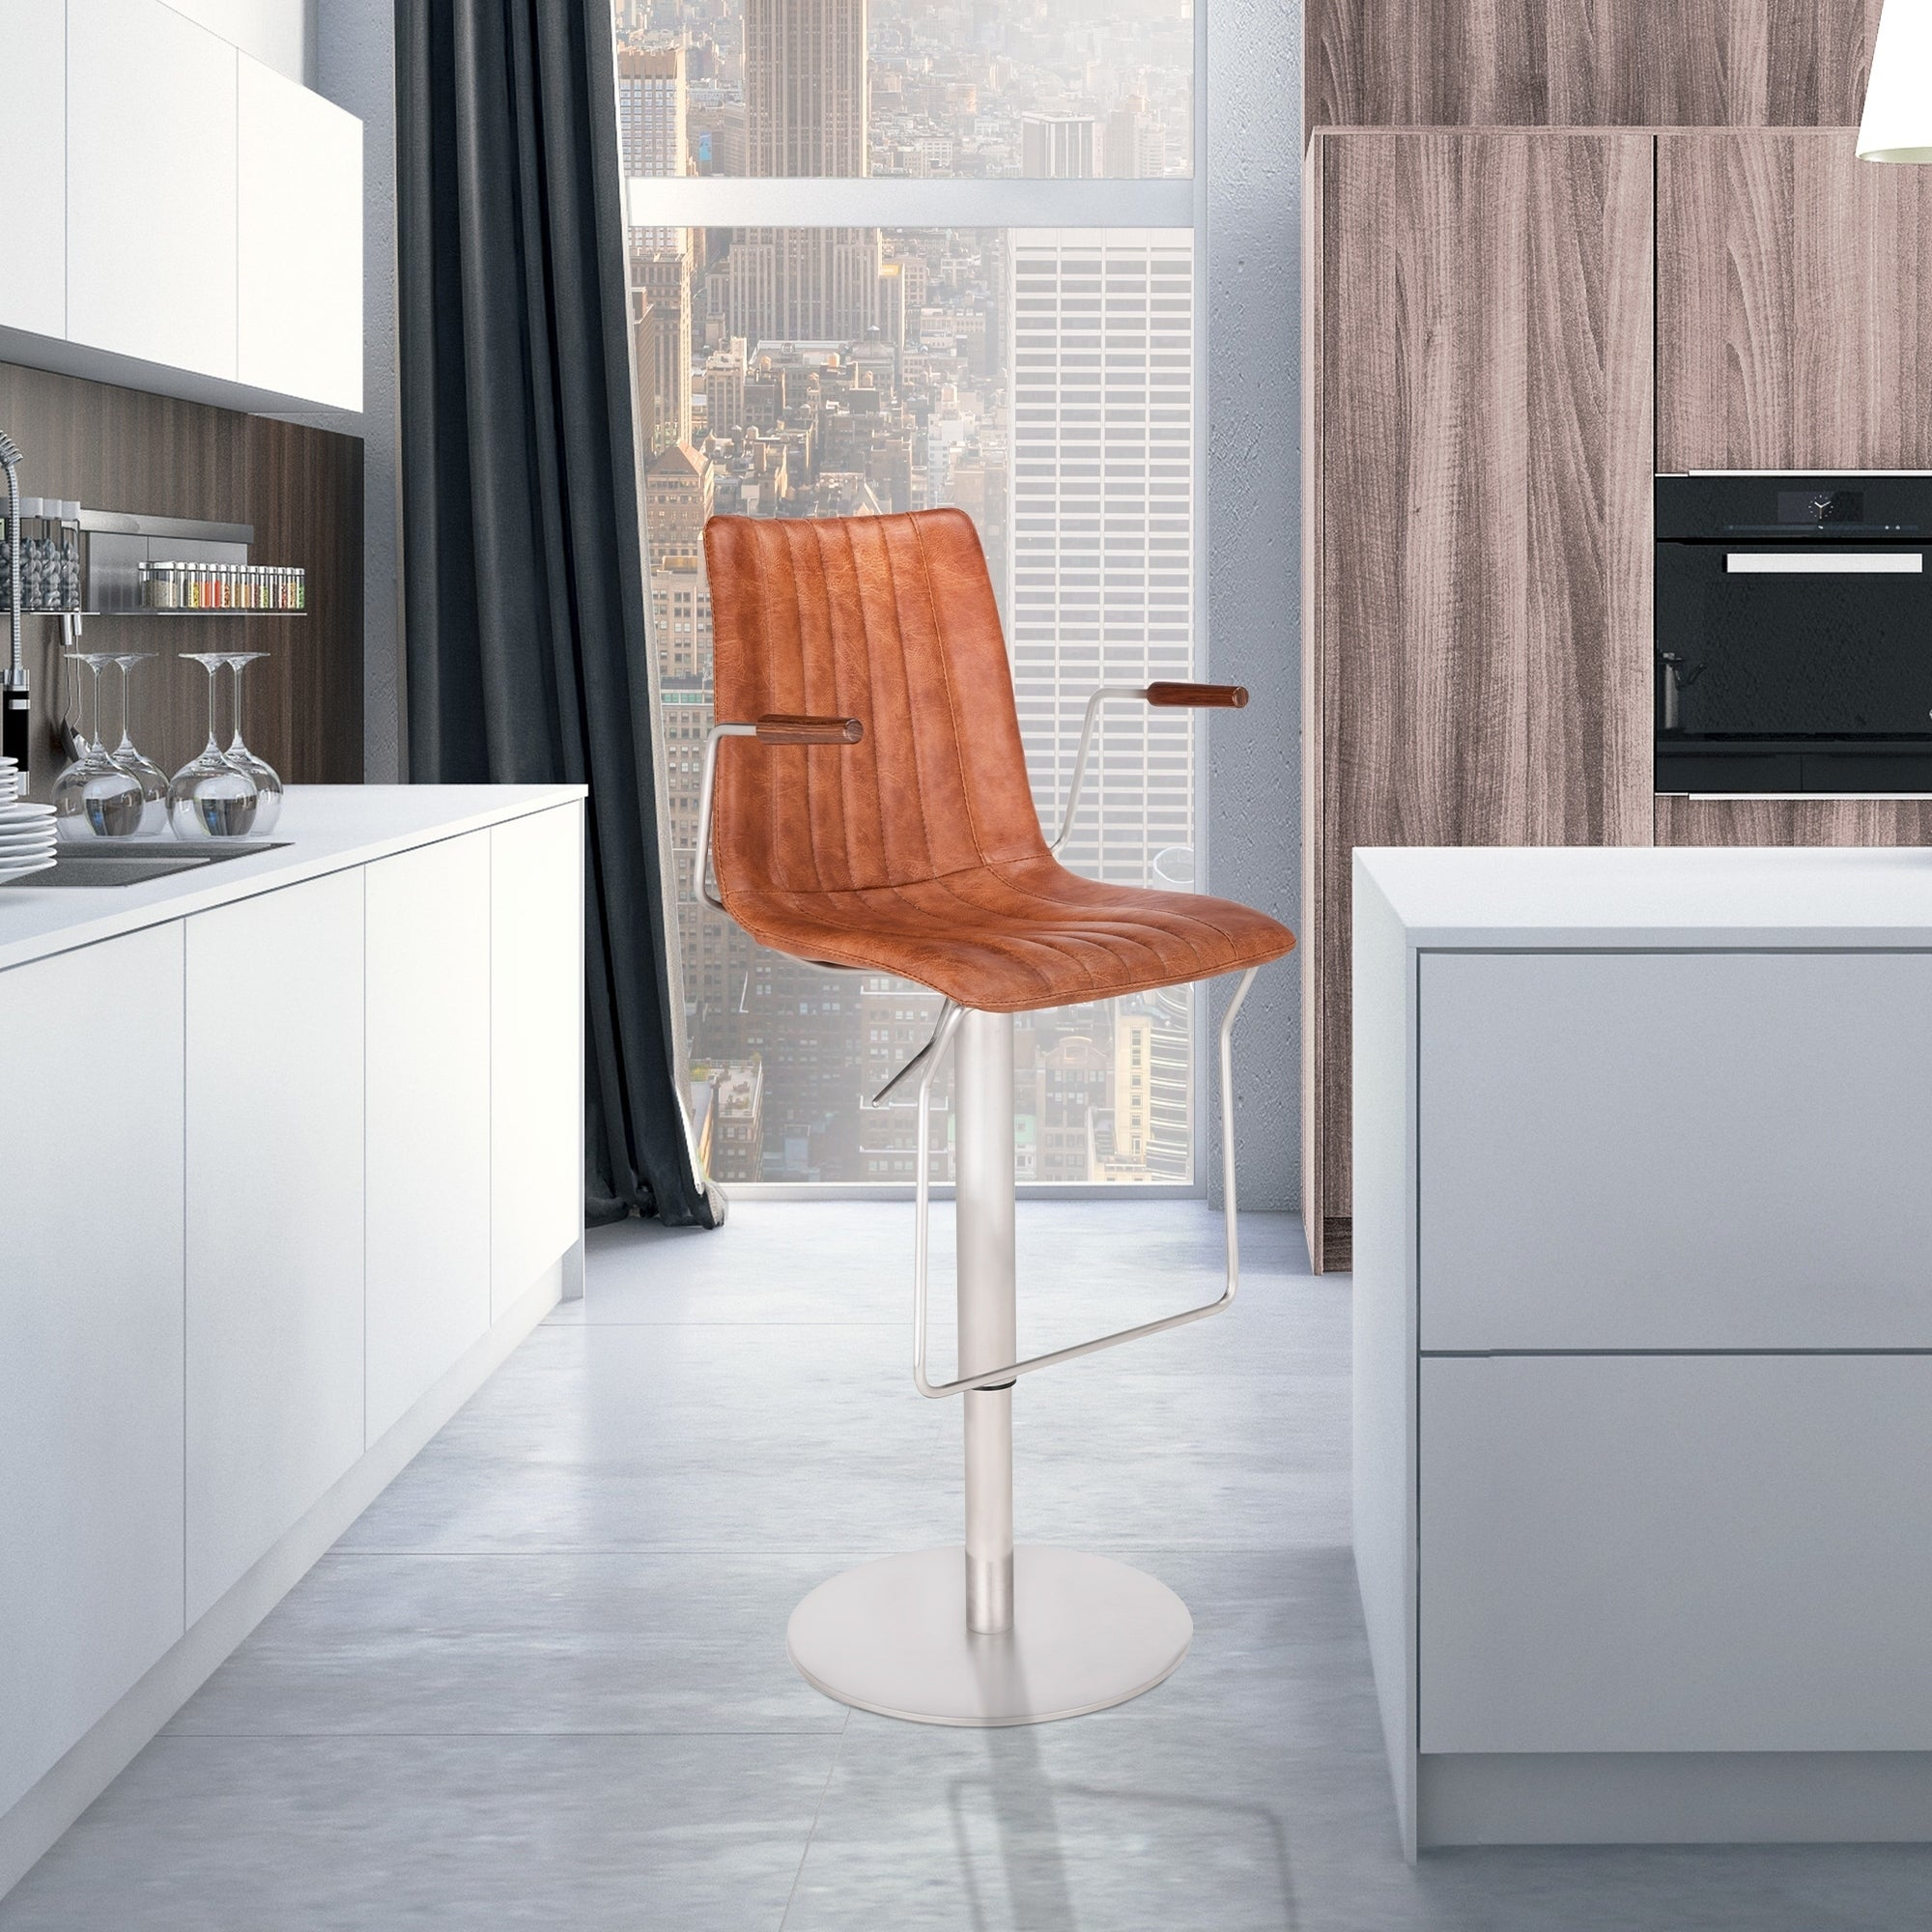 Andorra Modern Adjustable Barstool in Brushed Stainless Steel with Brown Faux Leather Seat and Walnut Arms